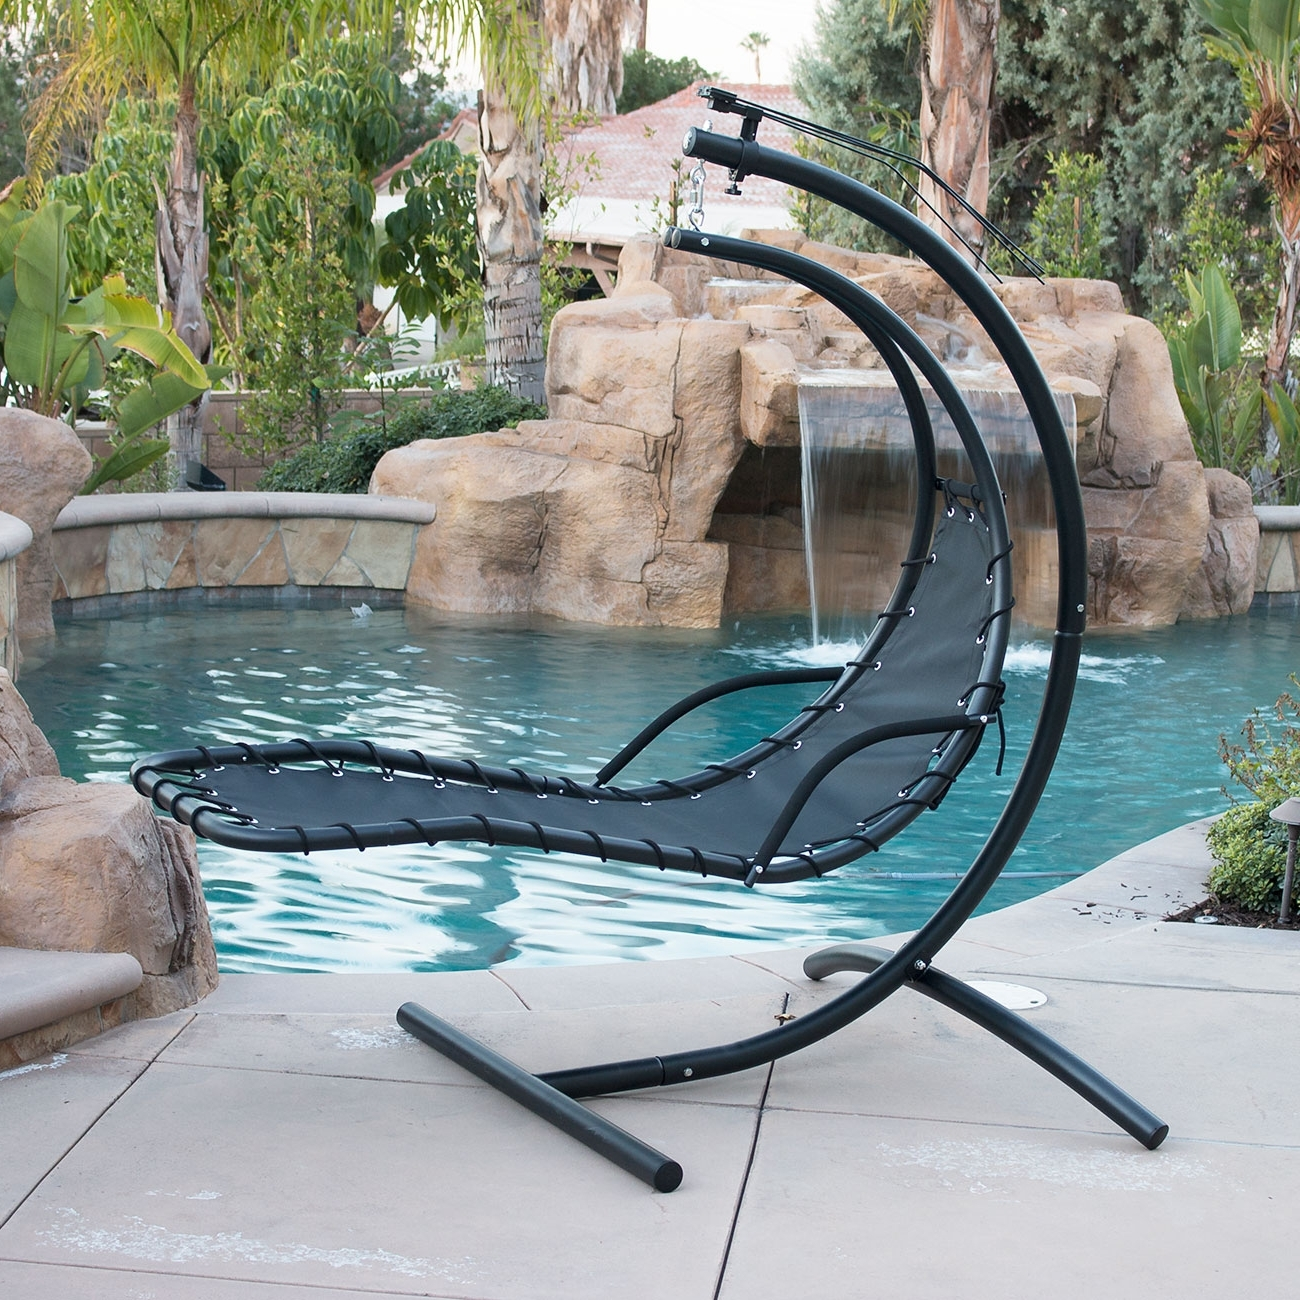 Hanging Chaise Lounge Chair Hammock Swing Canopy Glider Outdoor In Preferred Chaise Lounge Chairs For Sunroom (View 12 of 15)